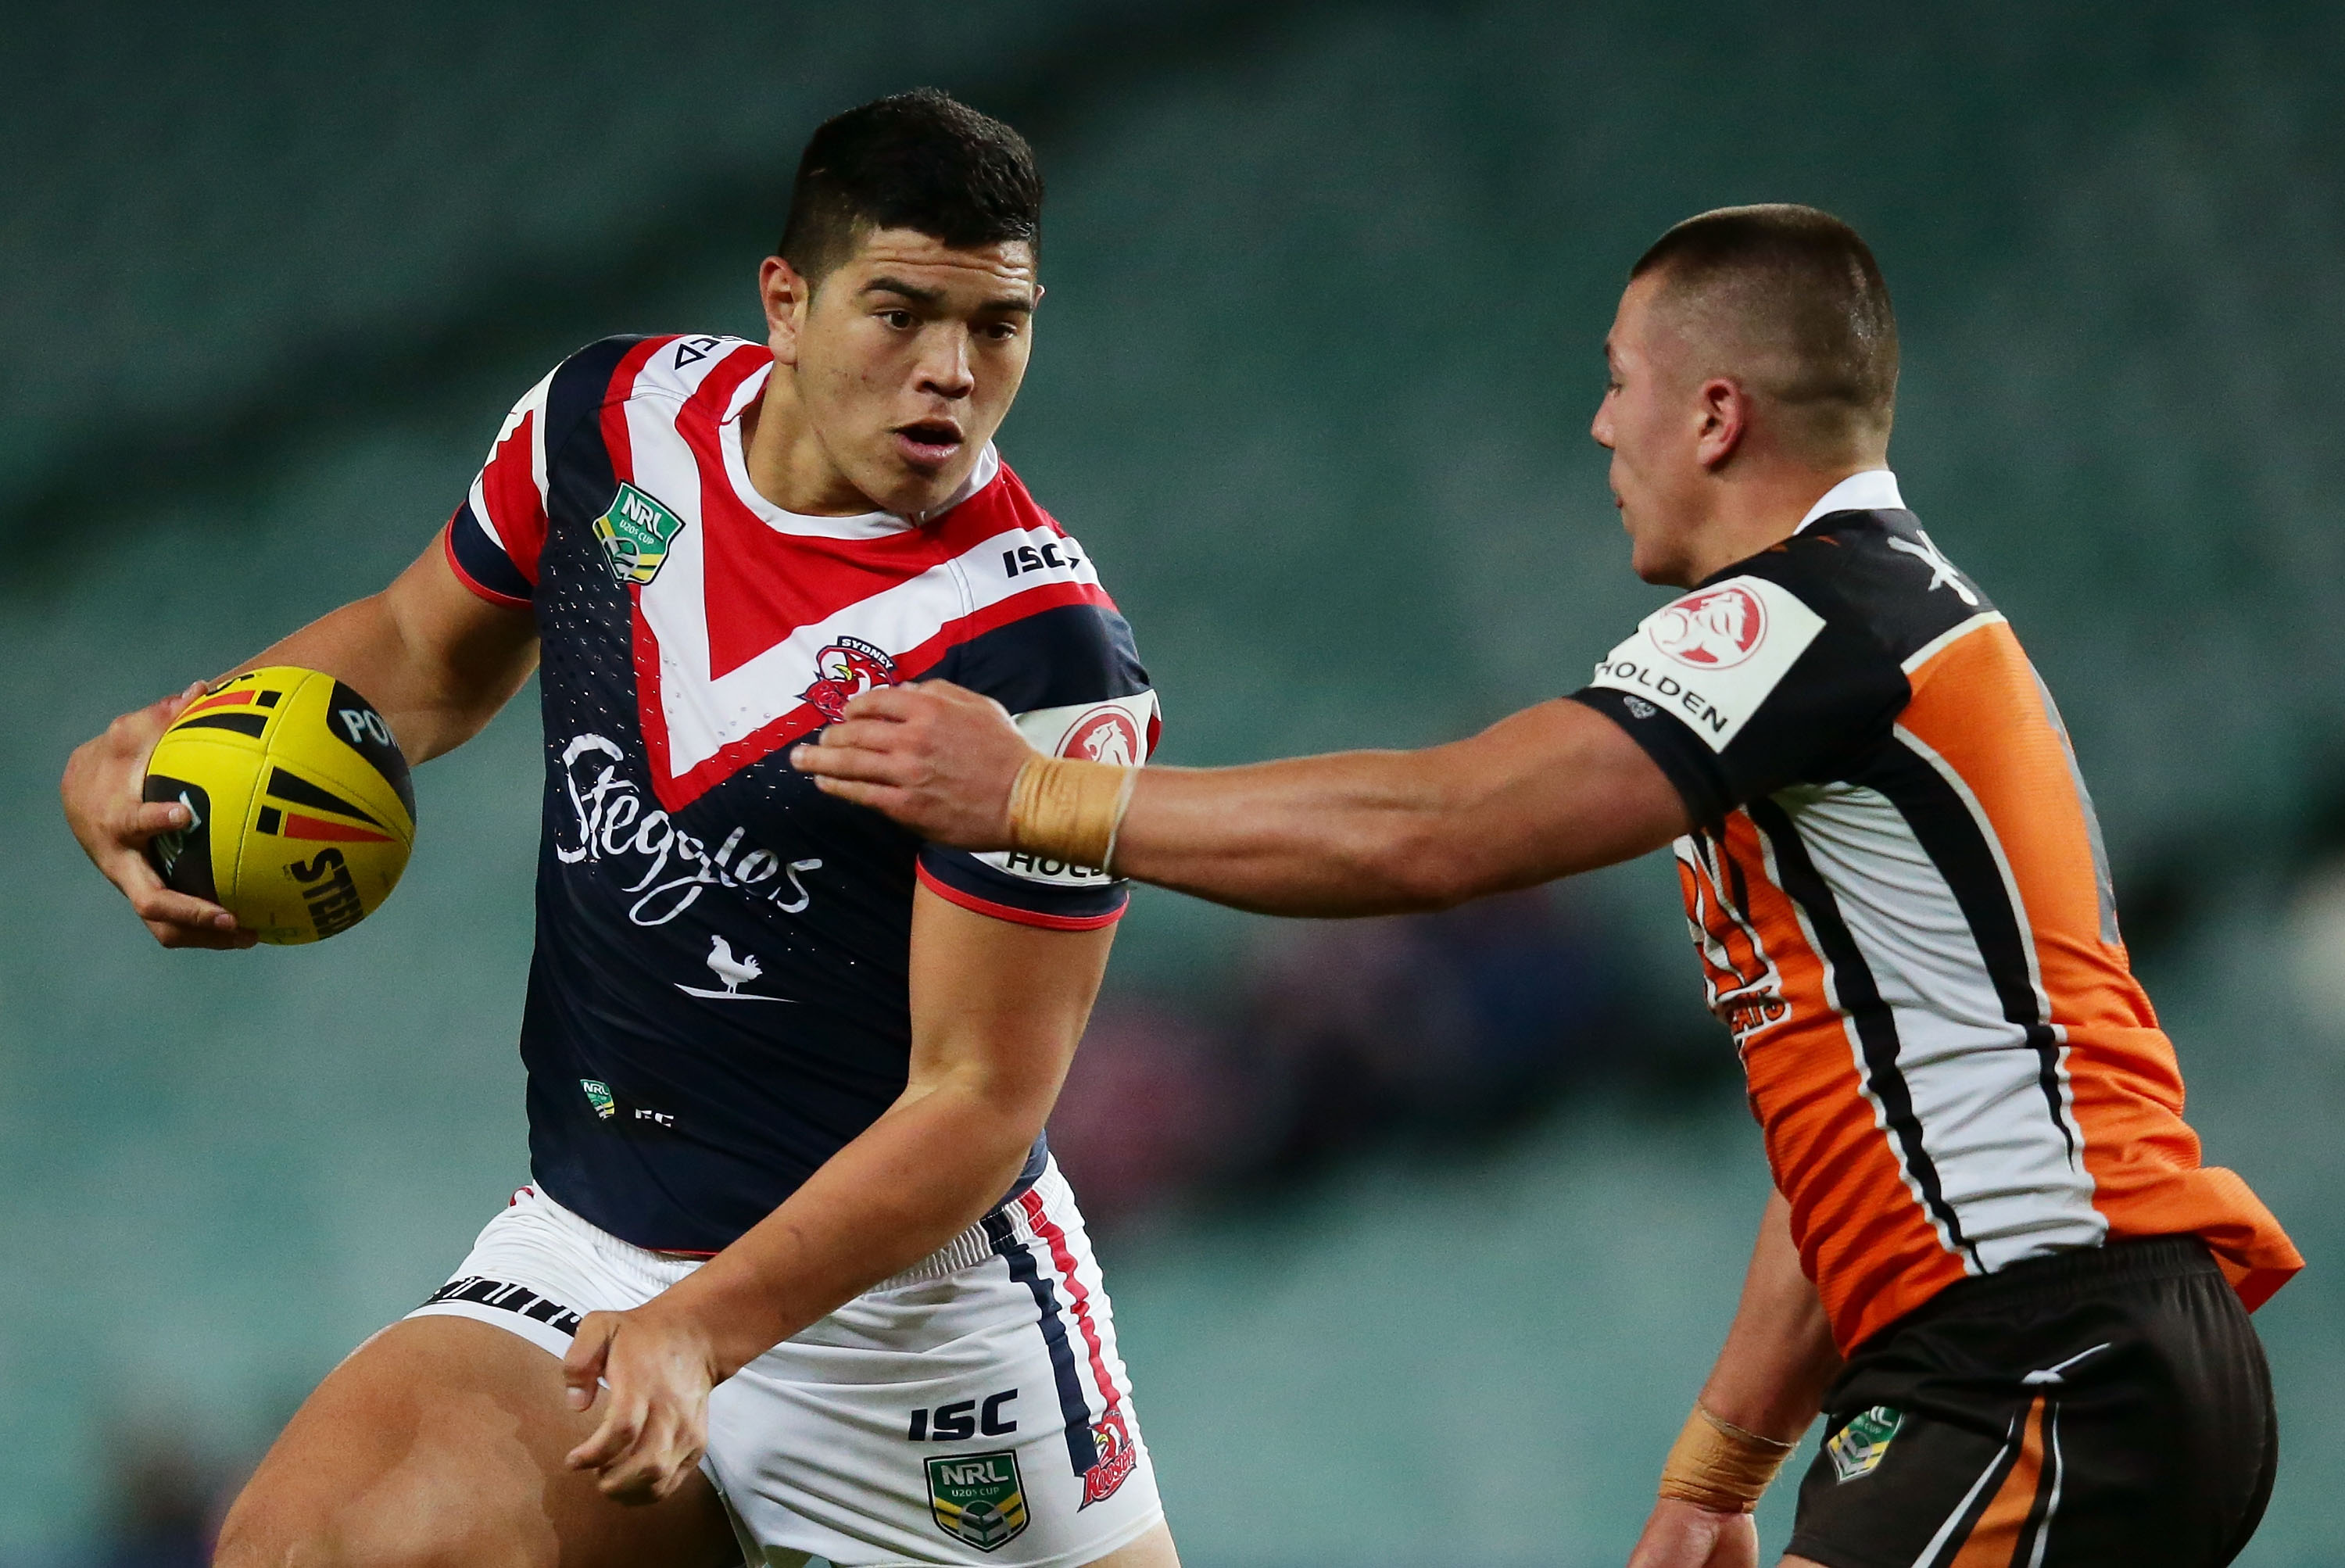 Canberra Raiders repel Sydney Roosters to claim 24-16 NRL victory